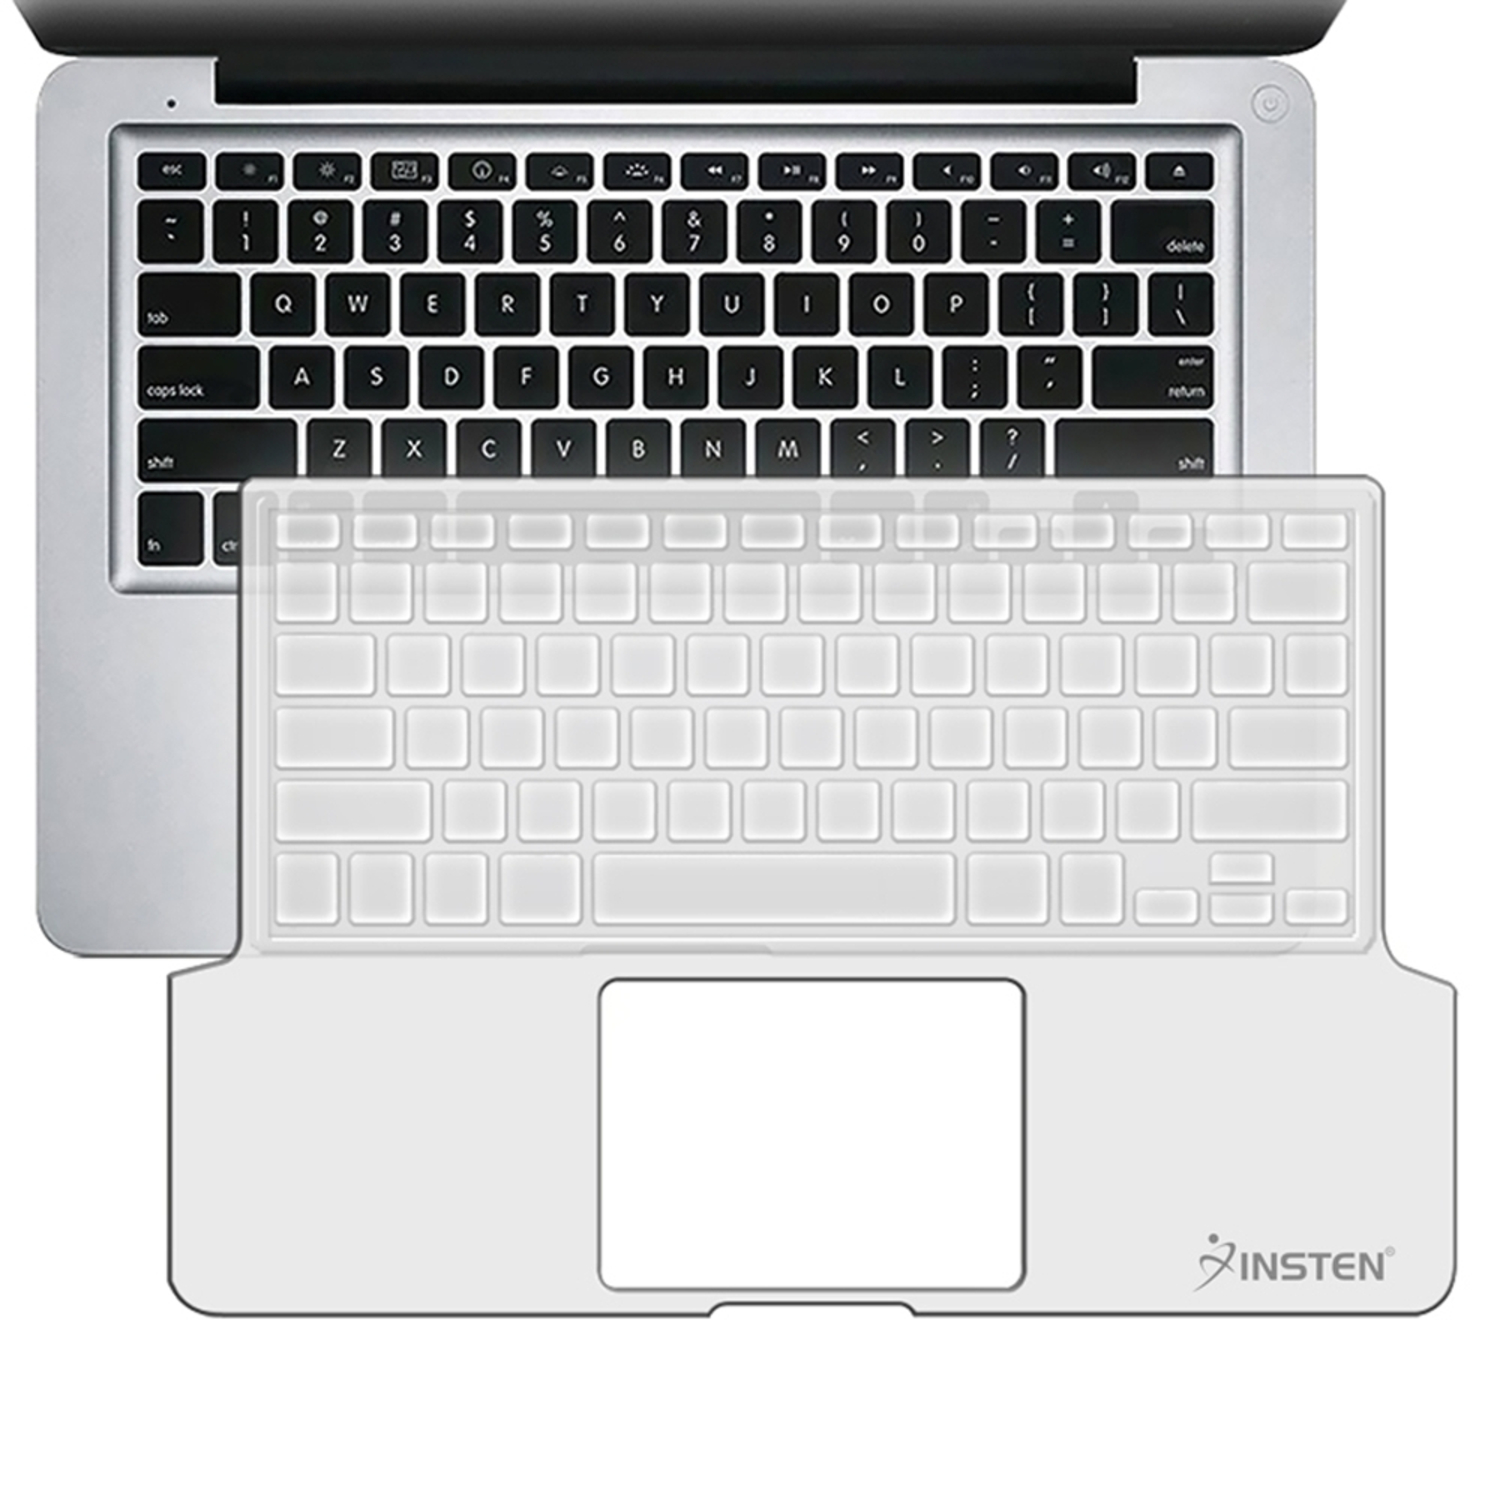 Insten For Macbook Pro 13 Inch Clear Keyboard Full Skin Shield Cover